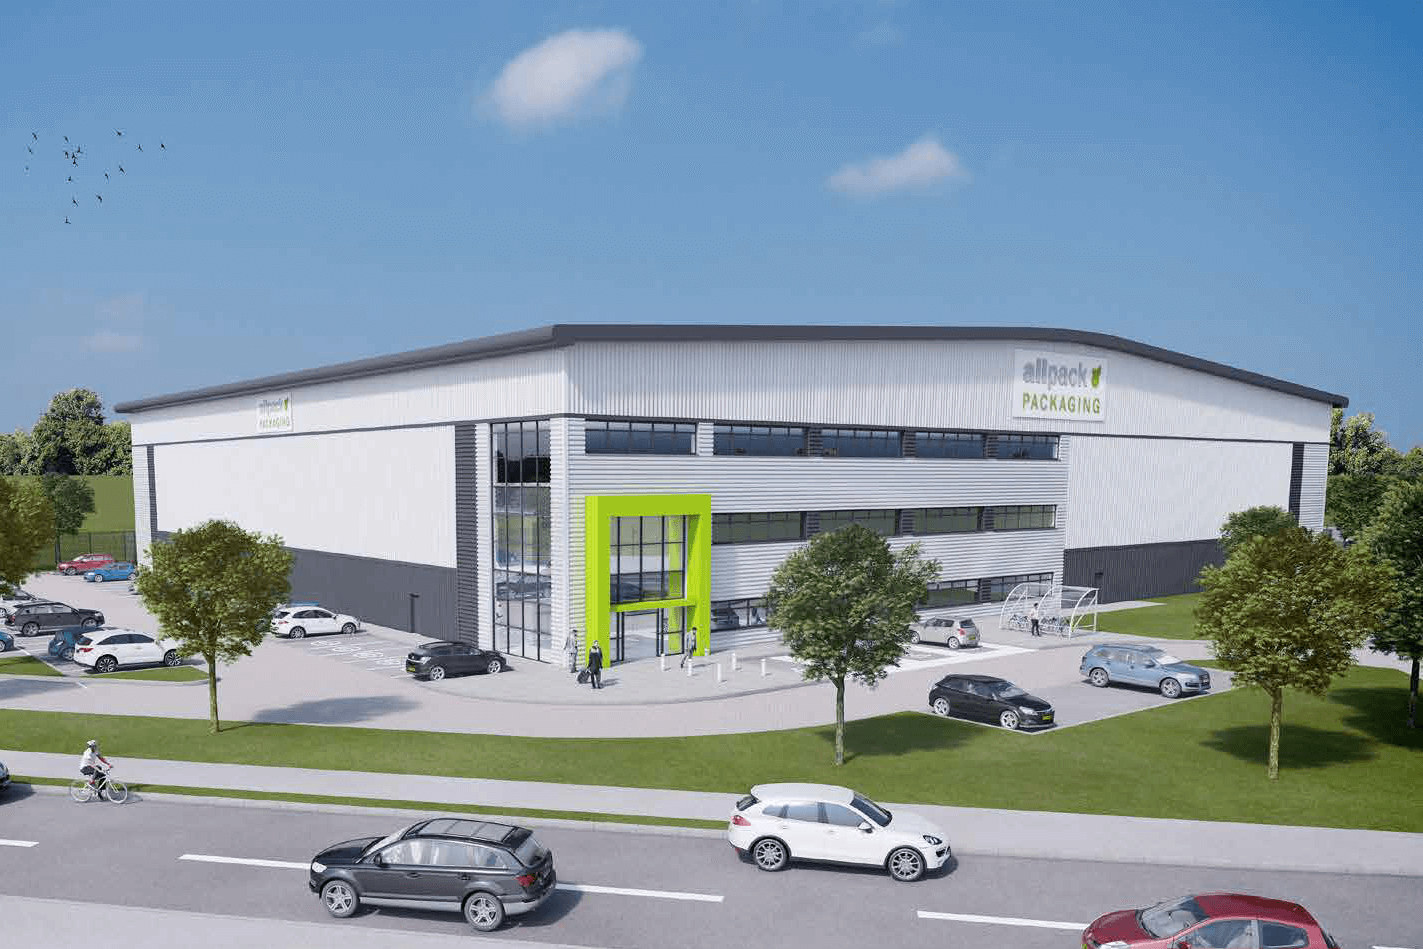 A CGI of the new Allpack headquarters building, totalling 60,000 sq. ft